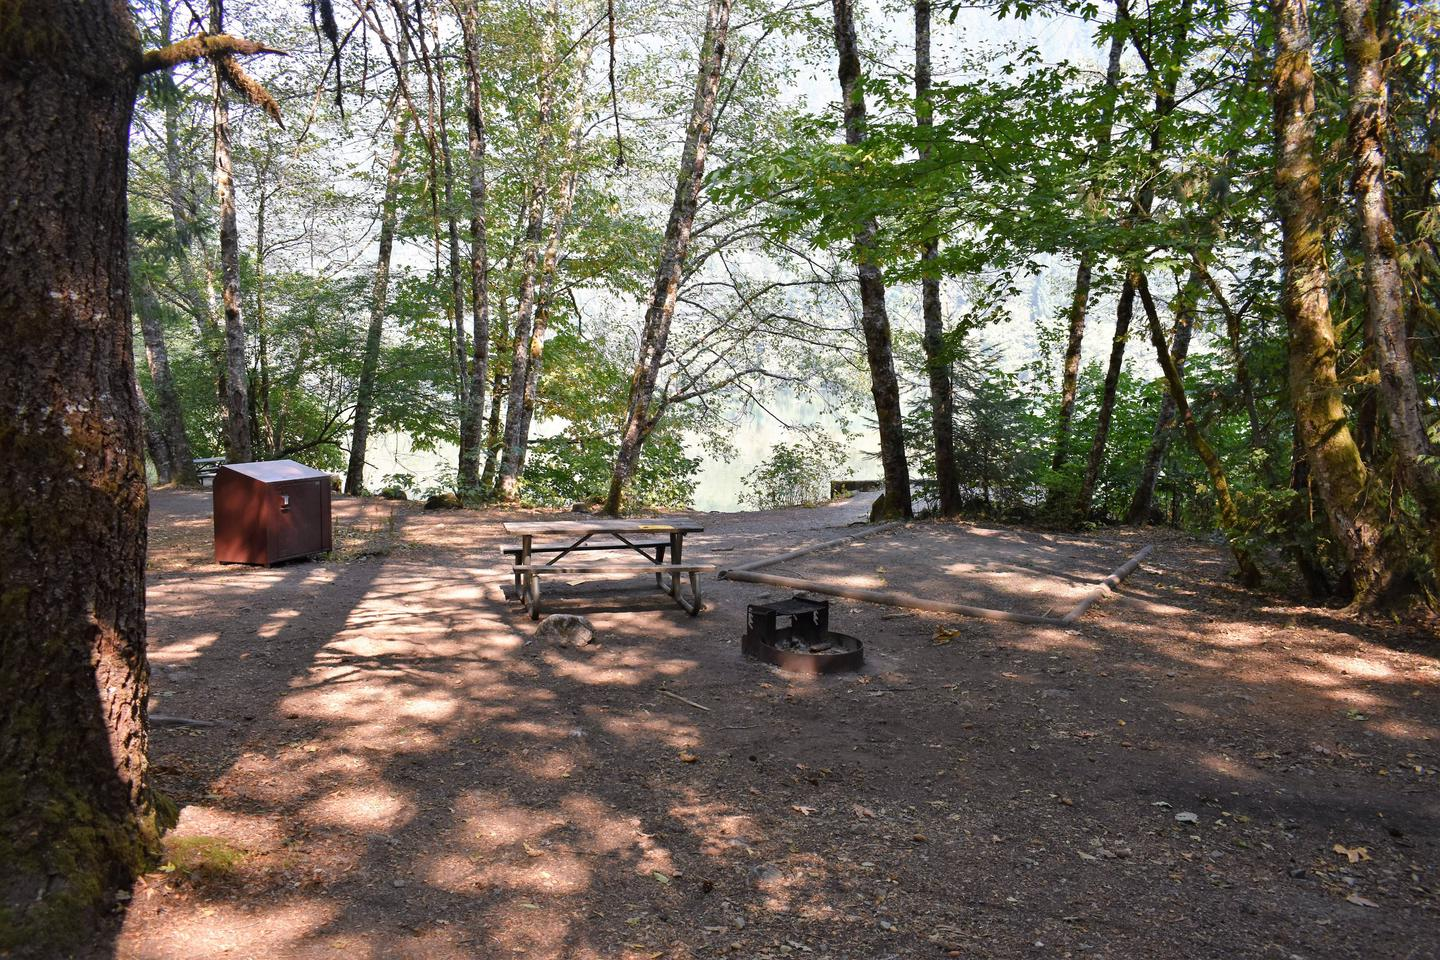 Food storage locker, picnic table, fire ring, and tent padView of campsite